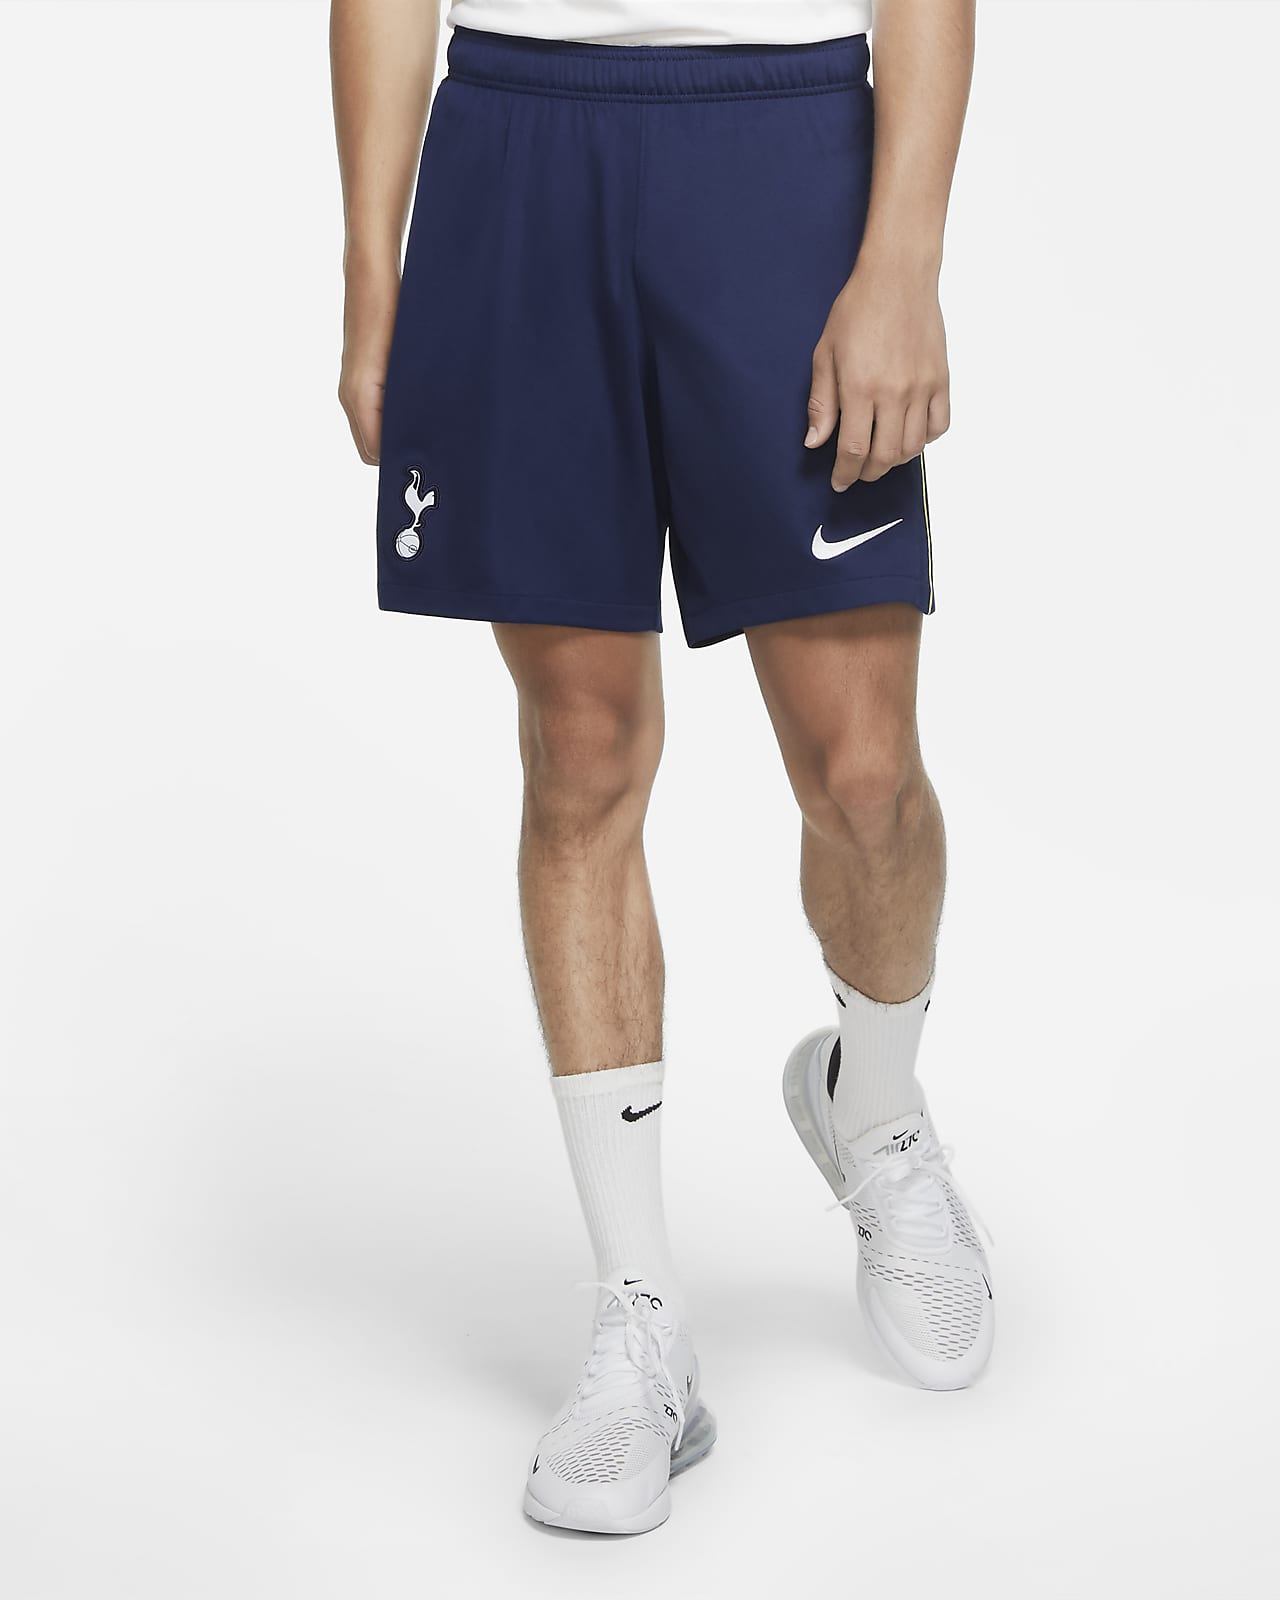 Tottenham Hotspur 2020/21 Stadium Home/Away Men's Football Shorts